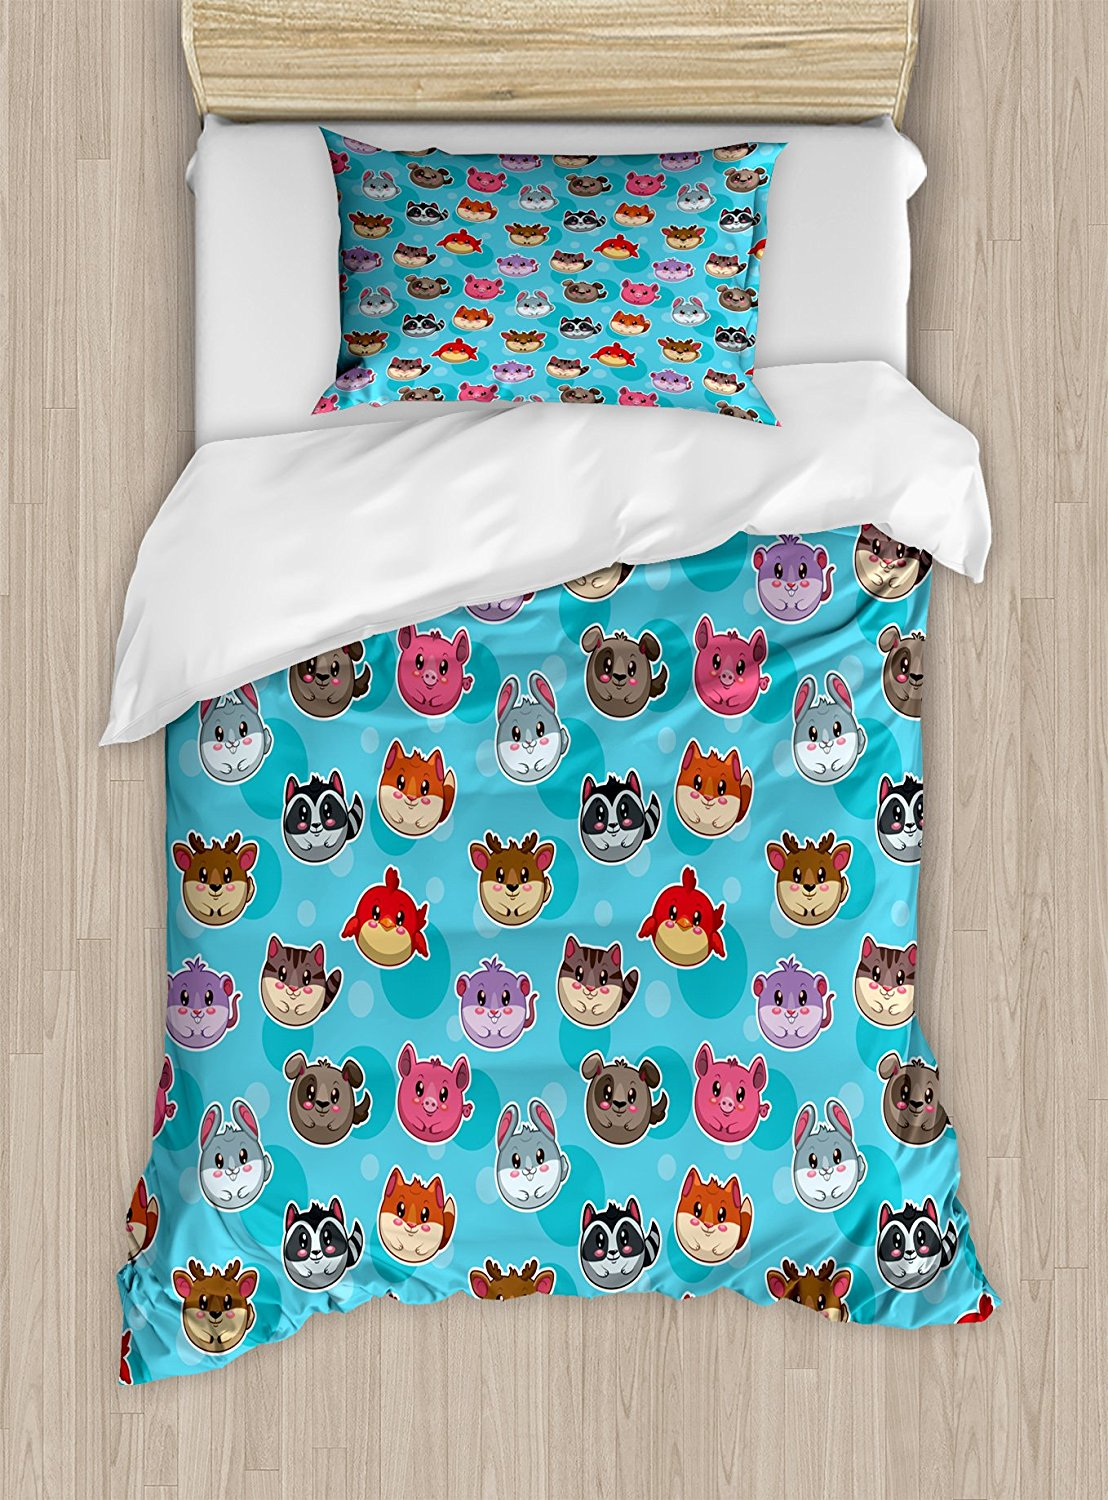 Duvet Cover Set Cartoon Style Round Different Animals Funny Smiling Faces of Toddler Chi ...